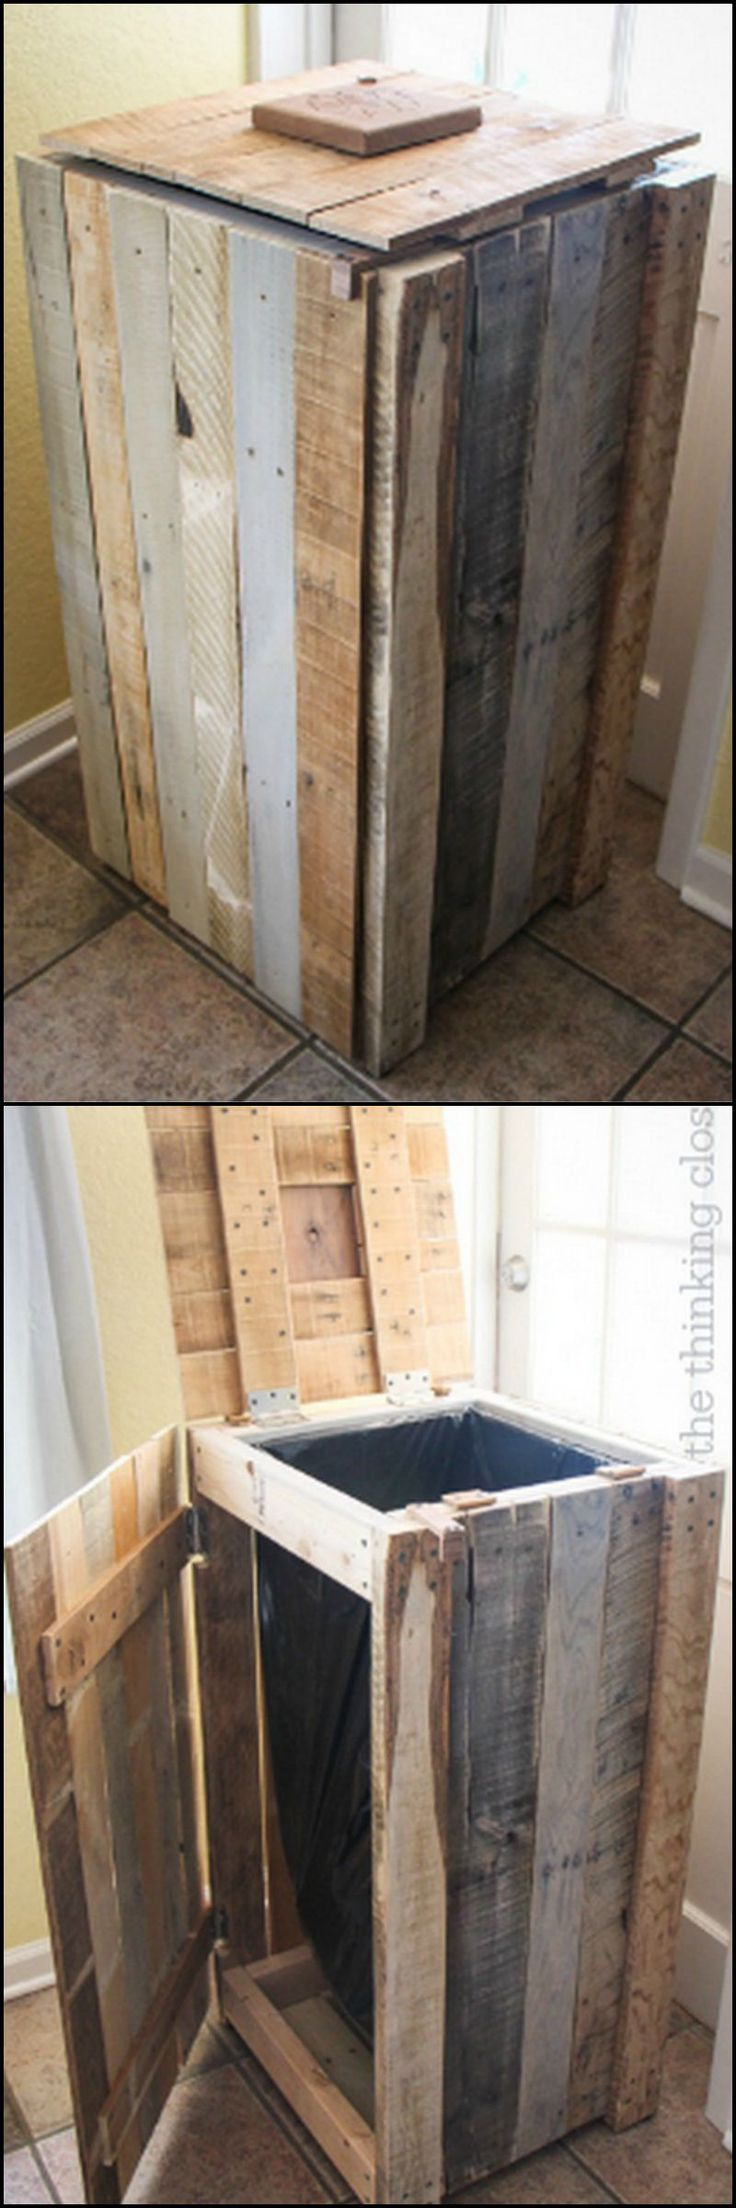 How To Turn Pallets Into A Recycle Bin http://theownerbuildernetwork.co/ua9d Mark and Lauren of 'The Thinking Closet' have the perfect solution to your recycle bin problem. Their idea is very clever! Could you use one of these in your home?